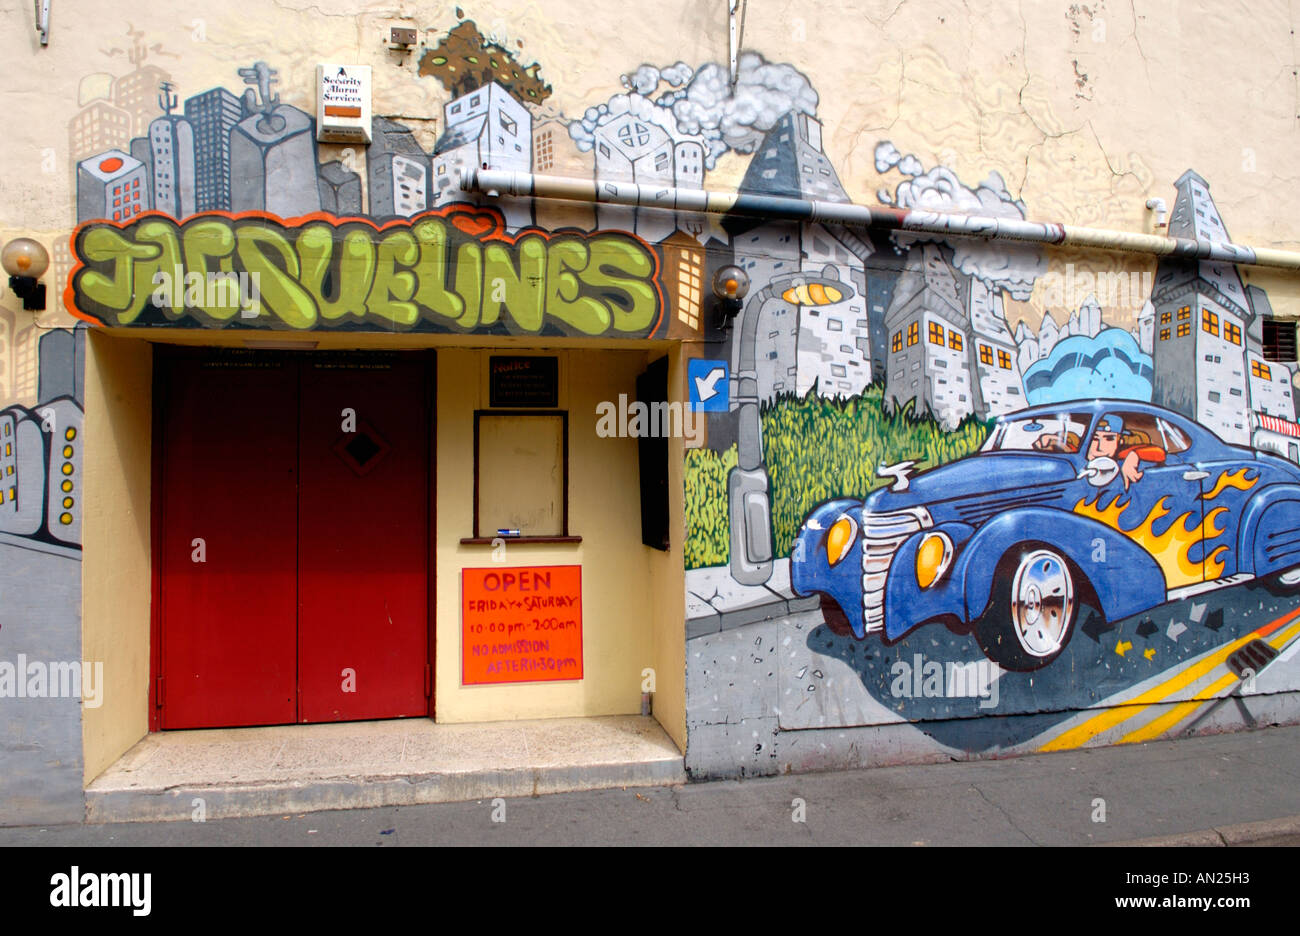 Official commercial graffiti art work on exterior wall of Jacquelines nite club in Ross on Wye Herefordshire England UK - Stock Image